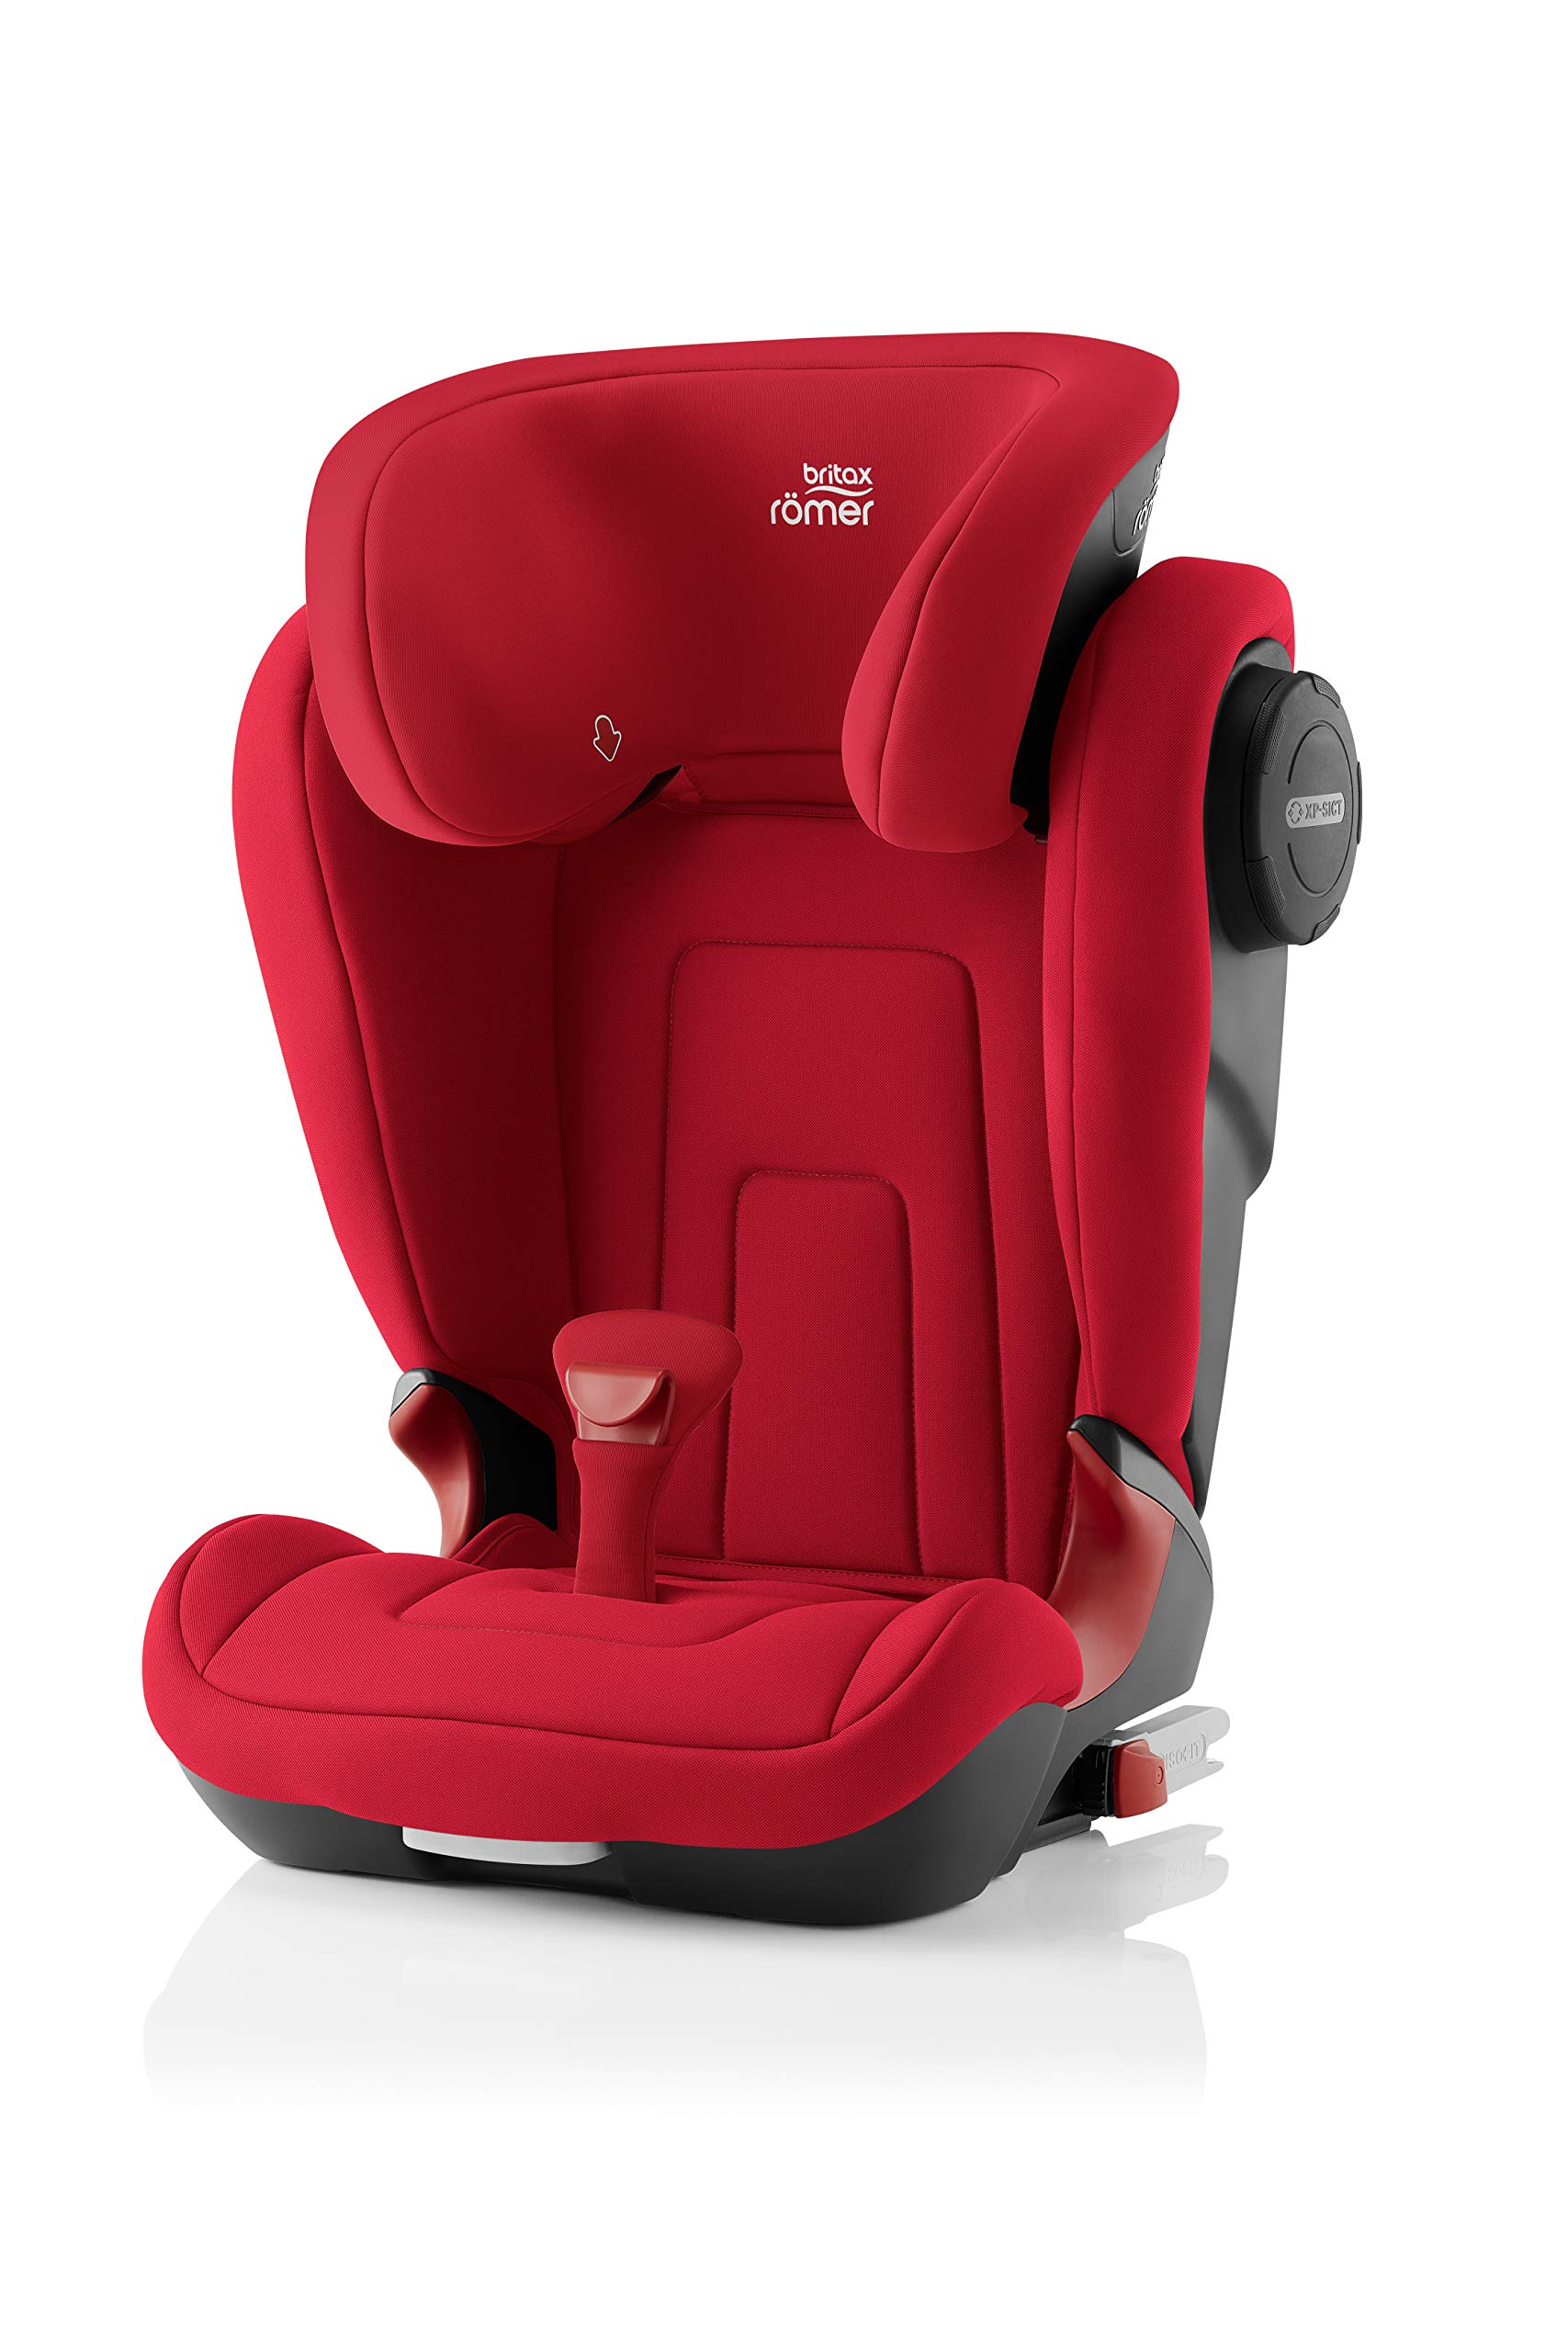 Britax Römer car seat 15-36 kg, KIDFIX 2 S Isofix group 2/3, Fire Red